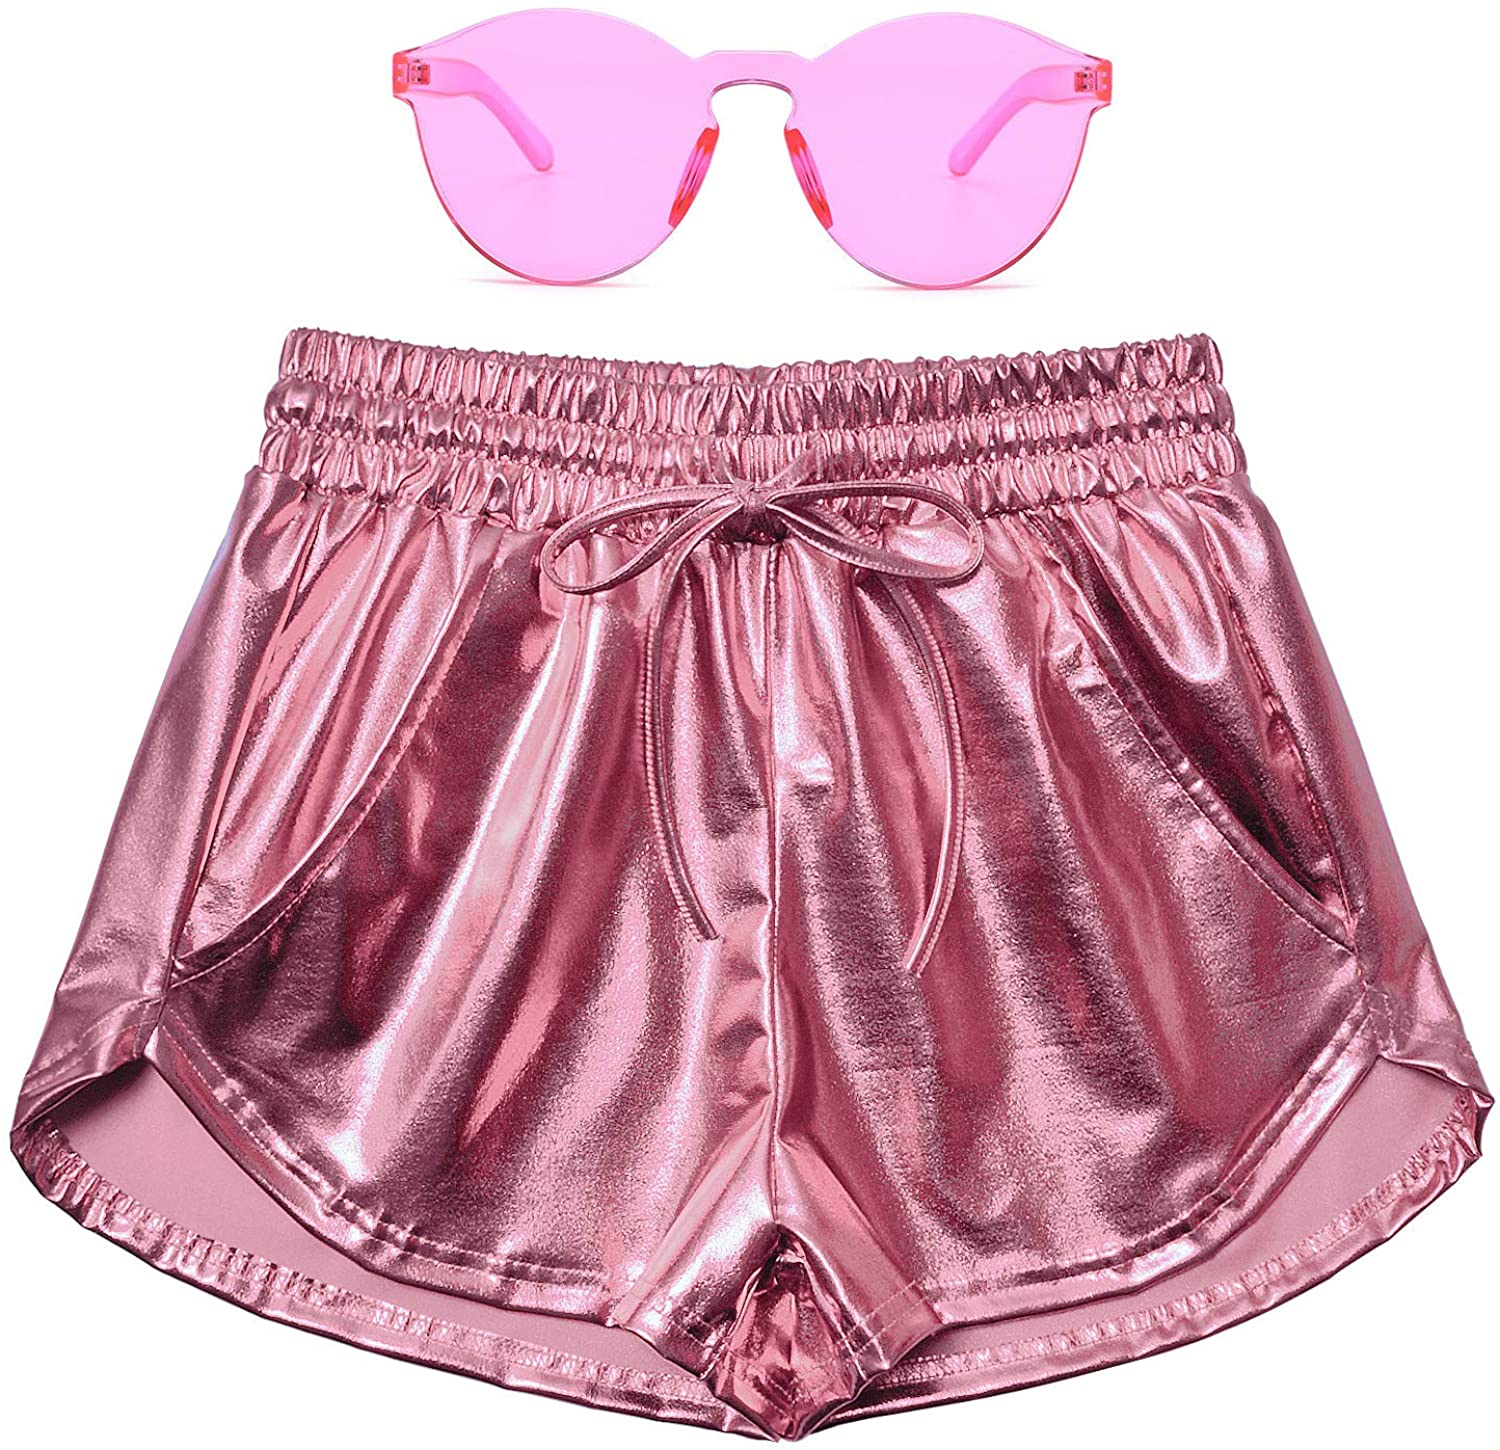 Perfashion Women's Daily 5 ☆ very popular bargain sale Metallic Shorts Summer Hot Shi Outfit Sparkly